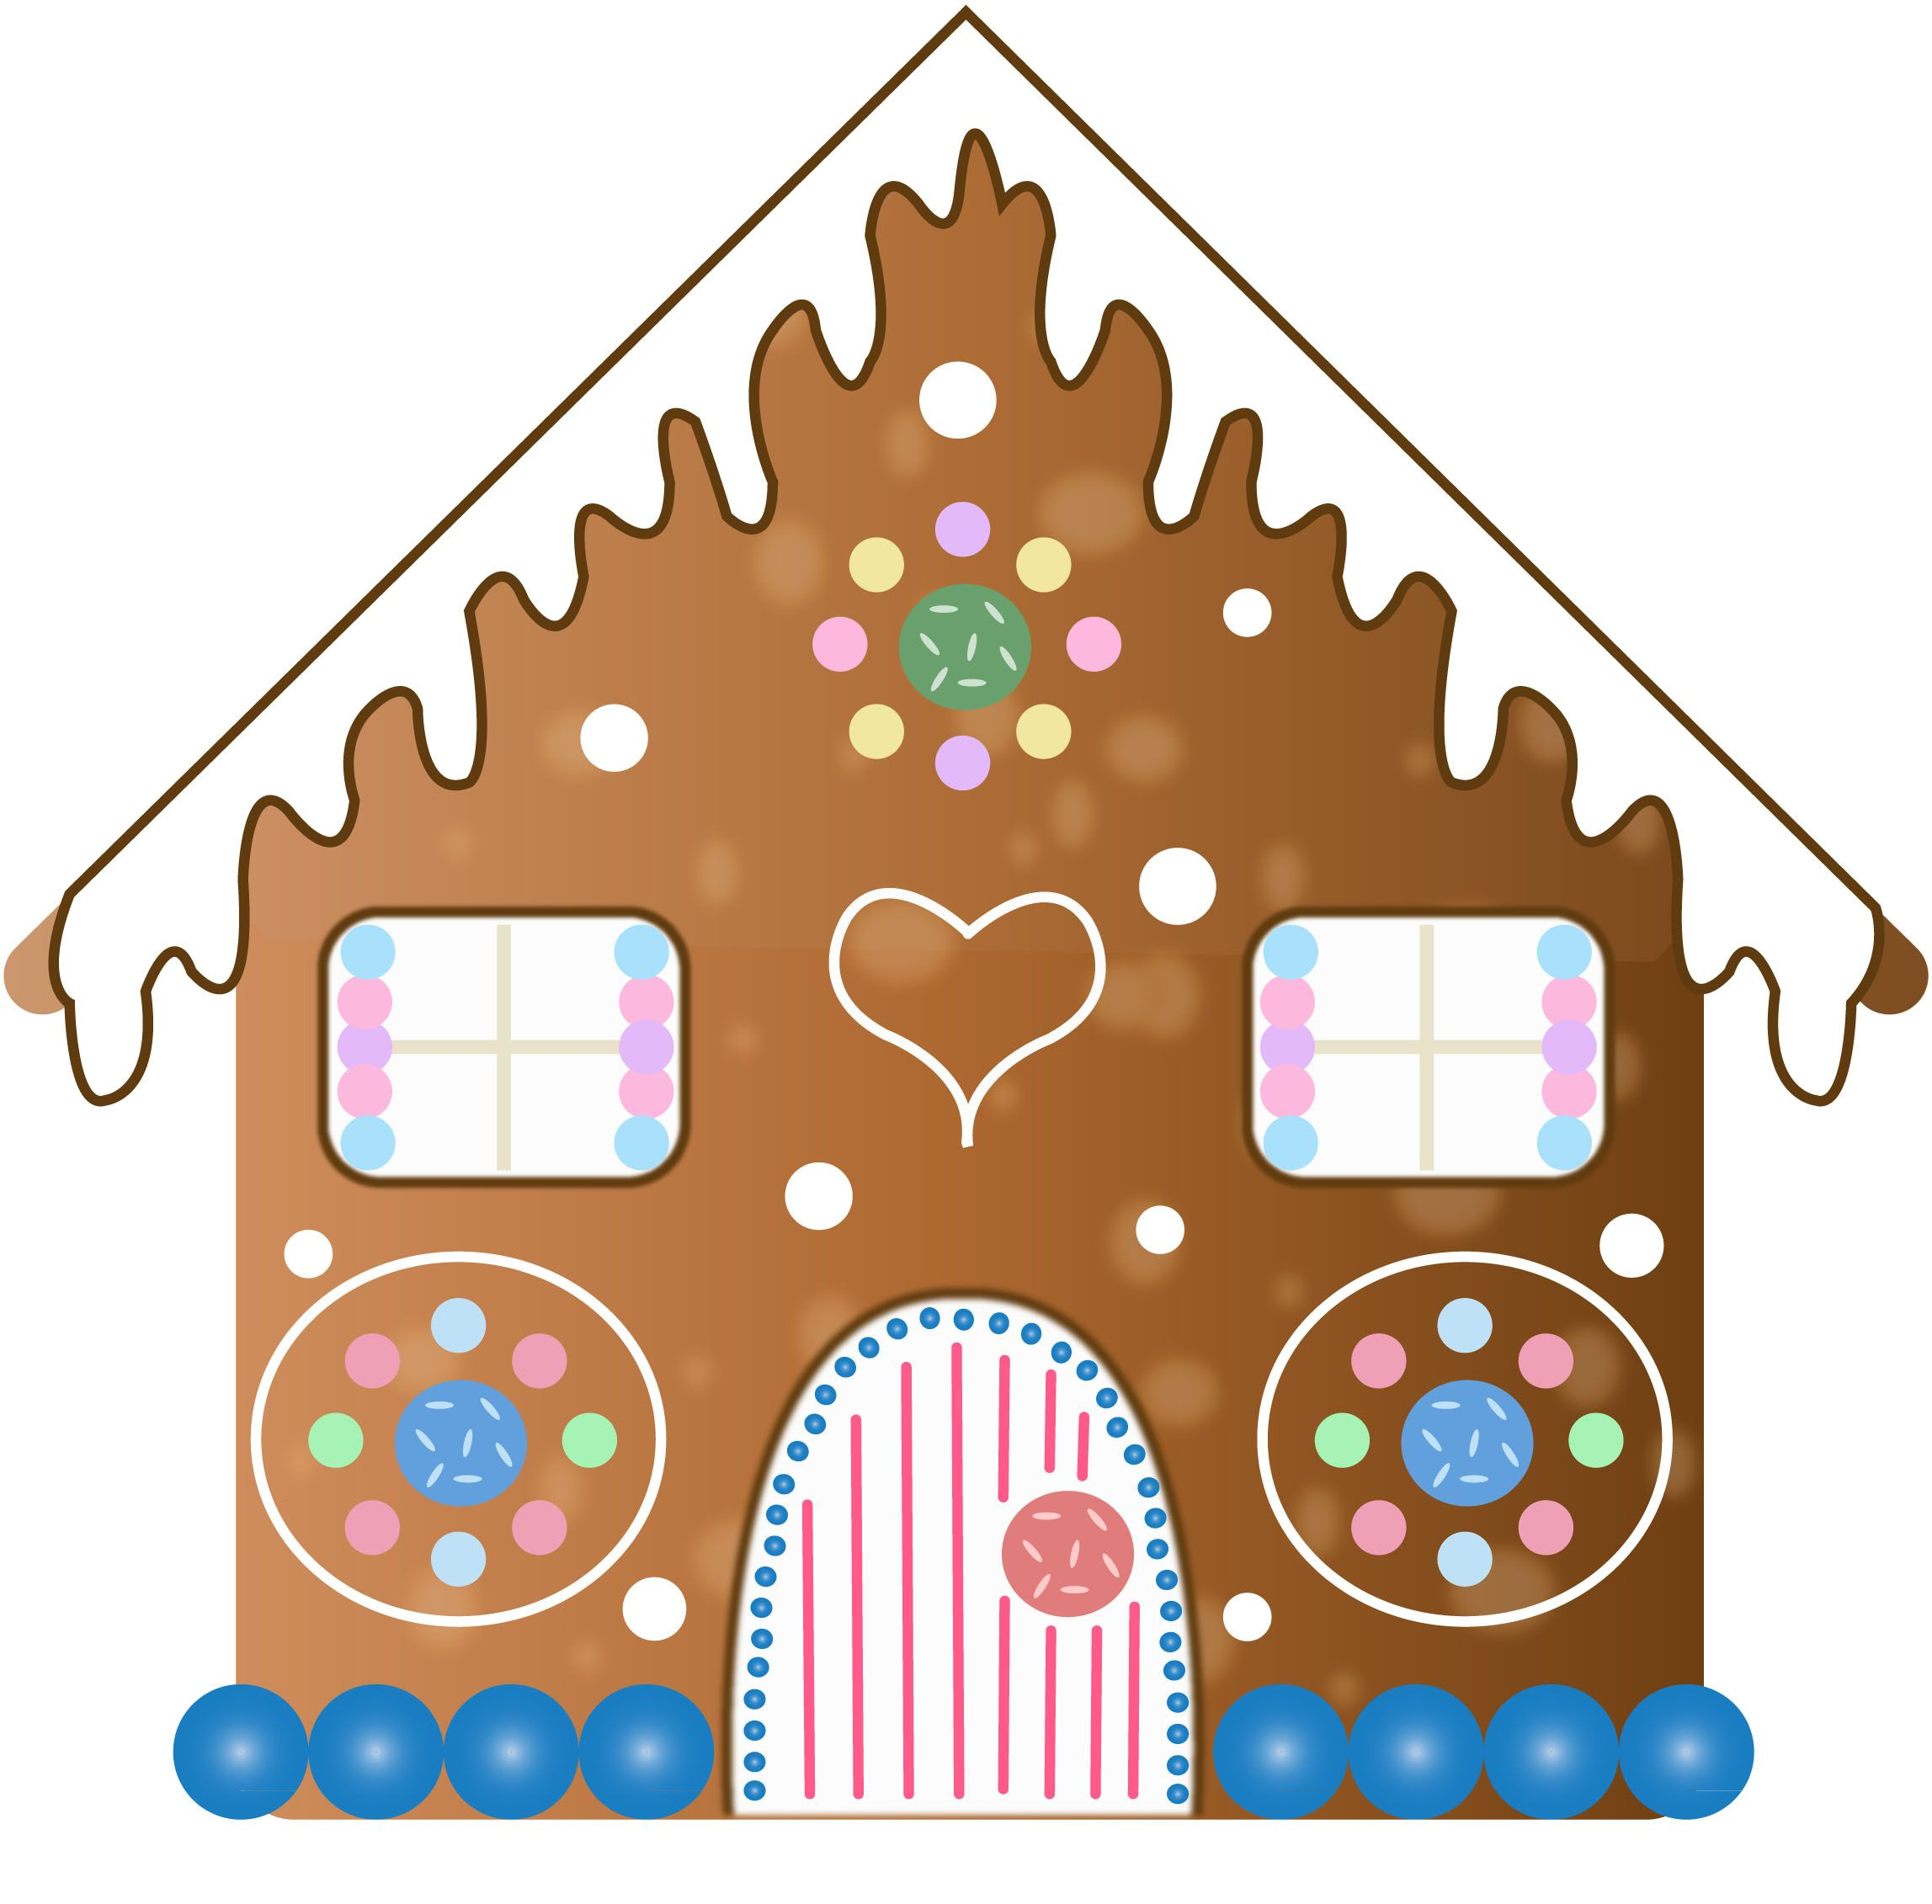 gingerbread house u2022 clip art gingerbread clipart gingerbread rh pinterest com gingerbread house clipart border gingerbread house clipart border